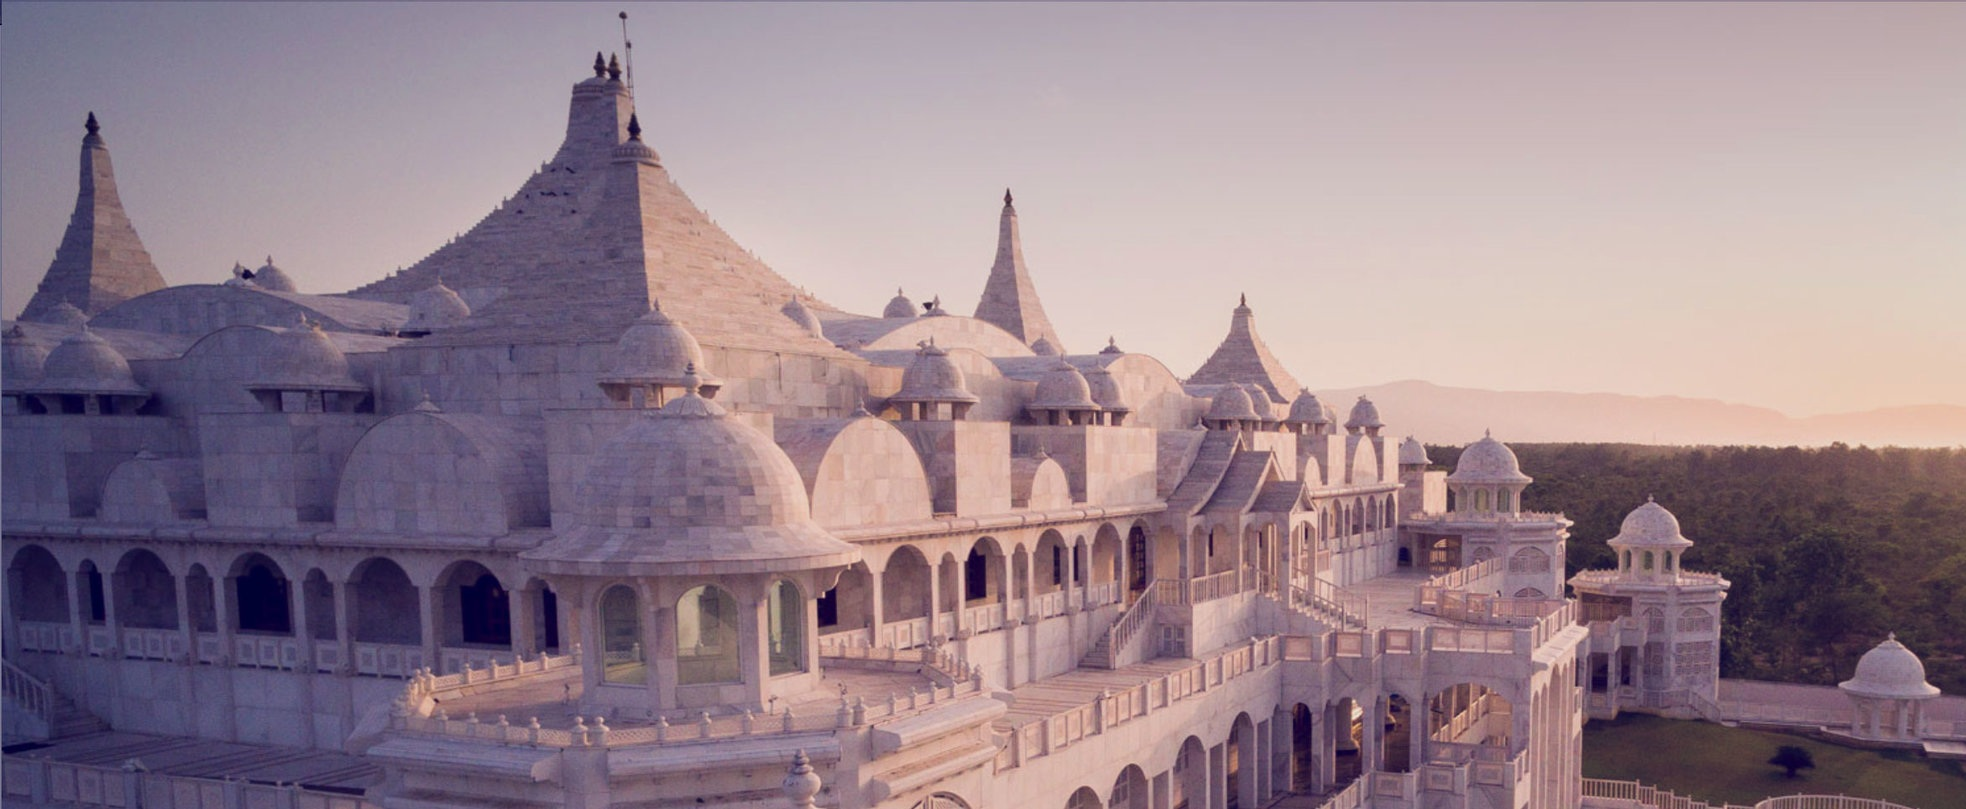 ekam, india - Ekam is a mystic power house Built with ancient sacred geometry to elevate humanity into enlightened states of consciousness and to accelerate world transformation. meditation is a happening. Transcendence is a happening. Awakening states or Mukti is a happening.